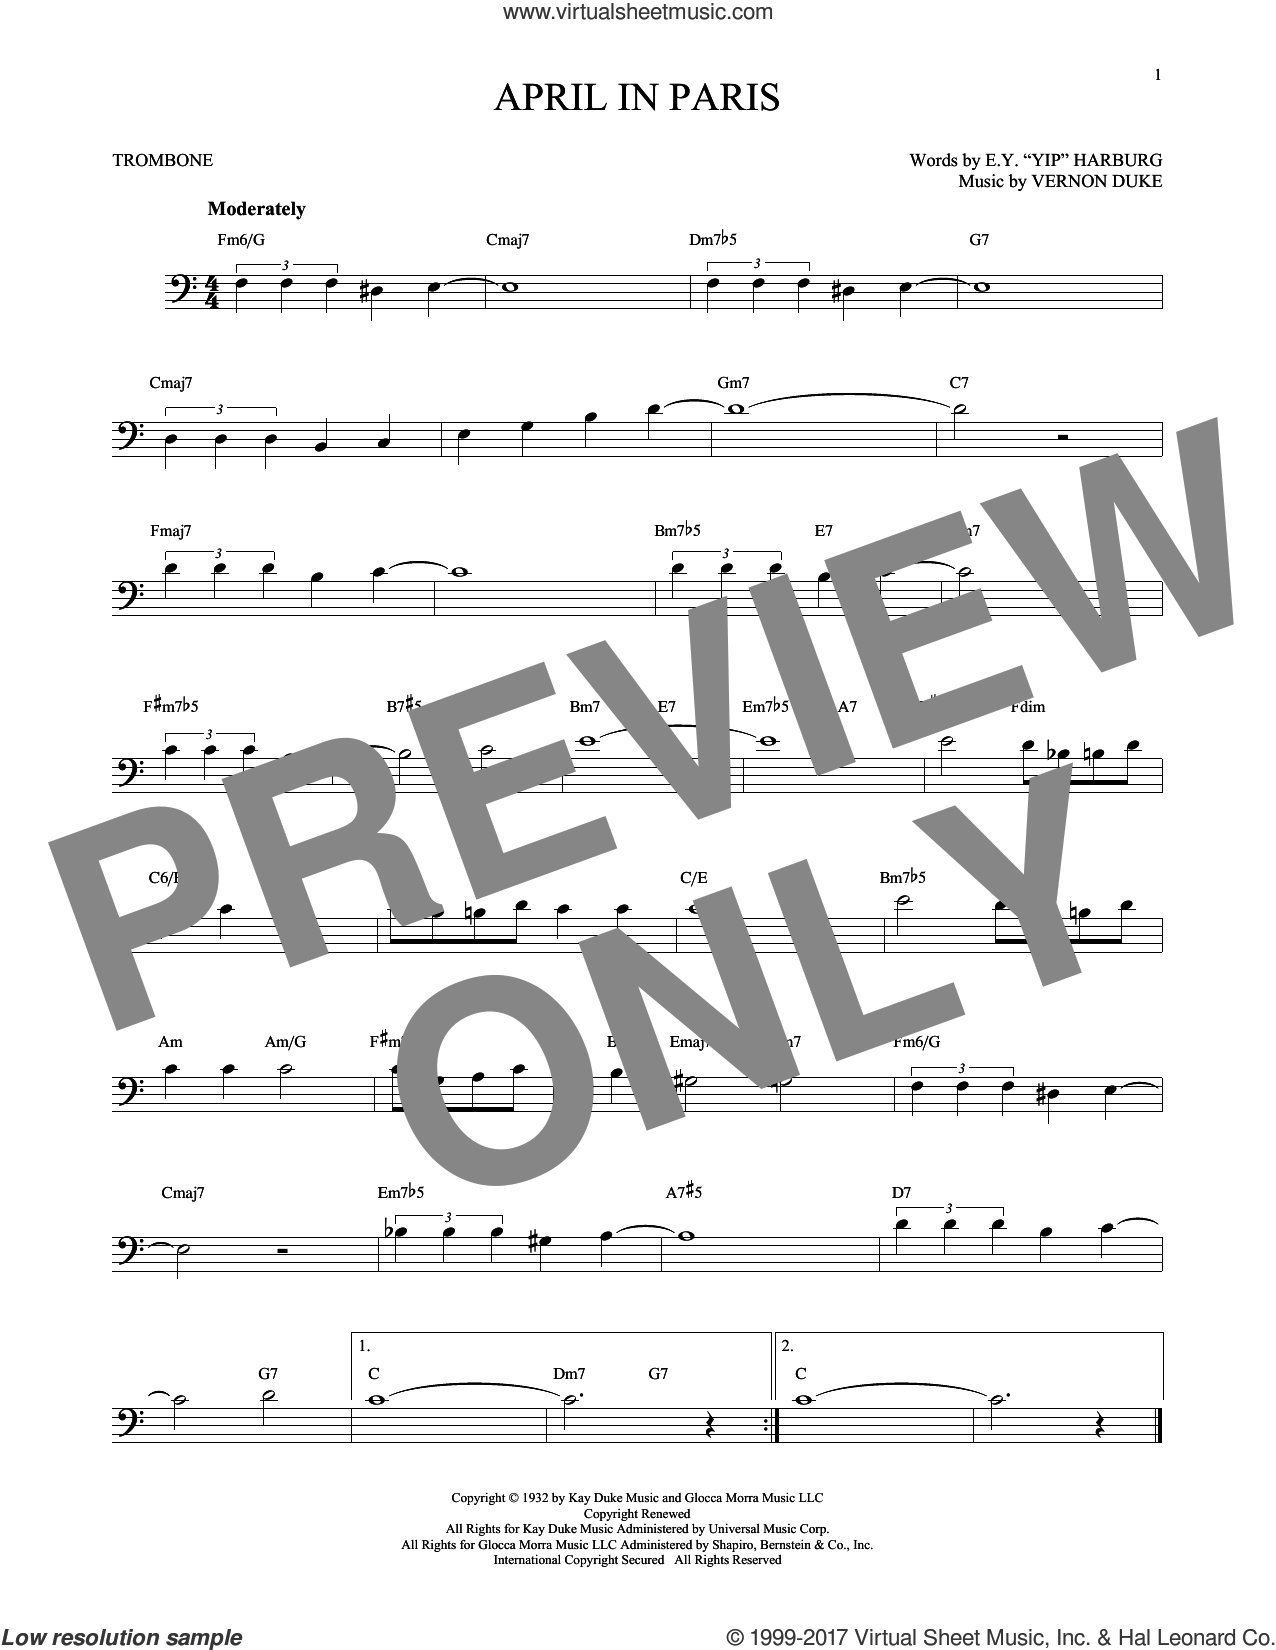 April In Paris sheet music for trombone solo by E.Y. Harburg, Coleman Hawkins, Count Basie, Modernaires and Vernon Duke, intermediate skill level